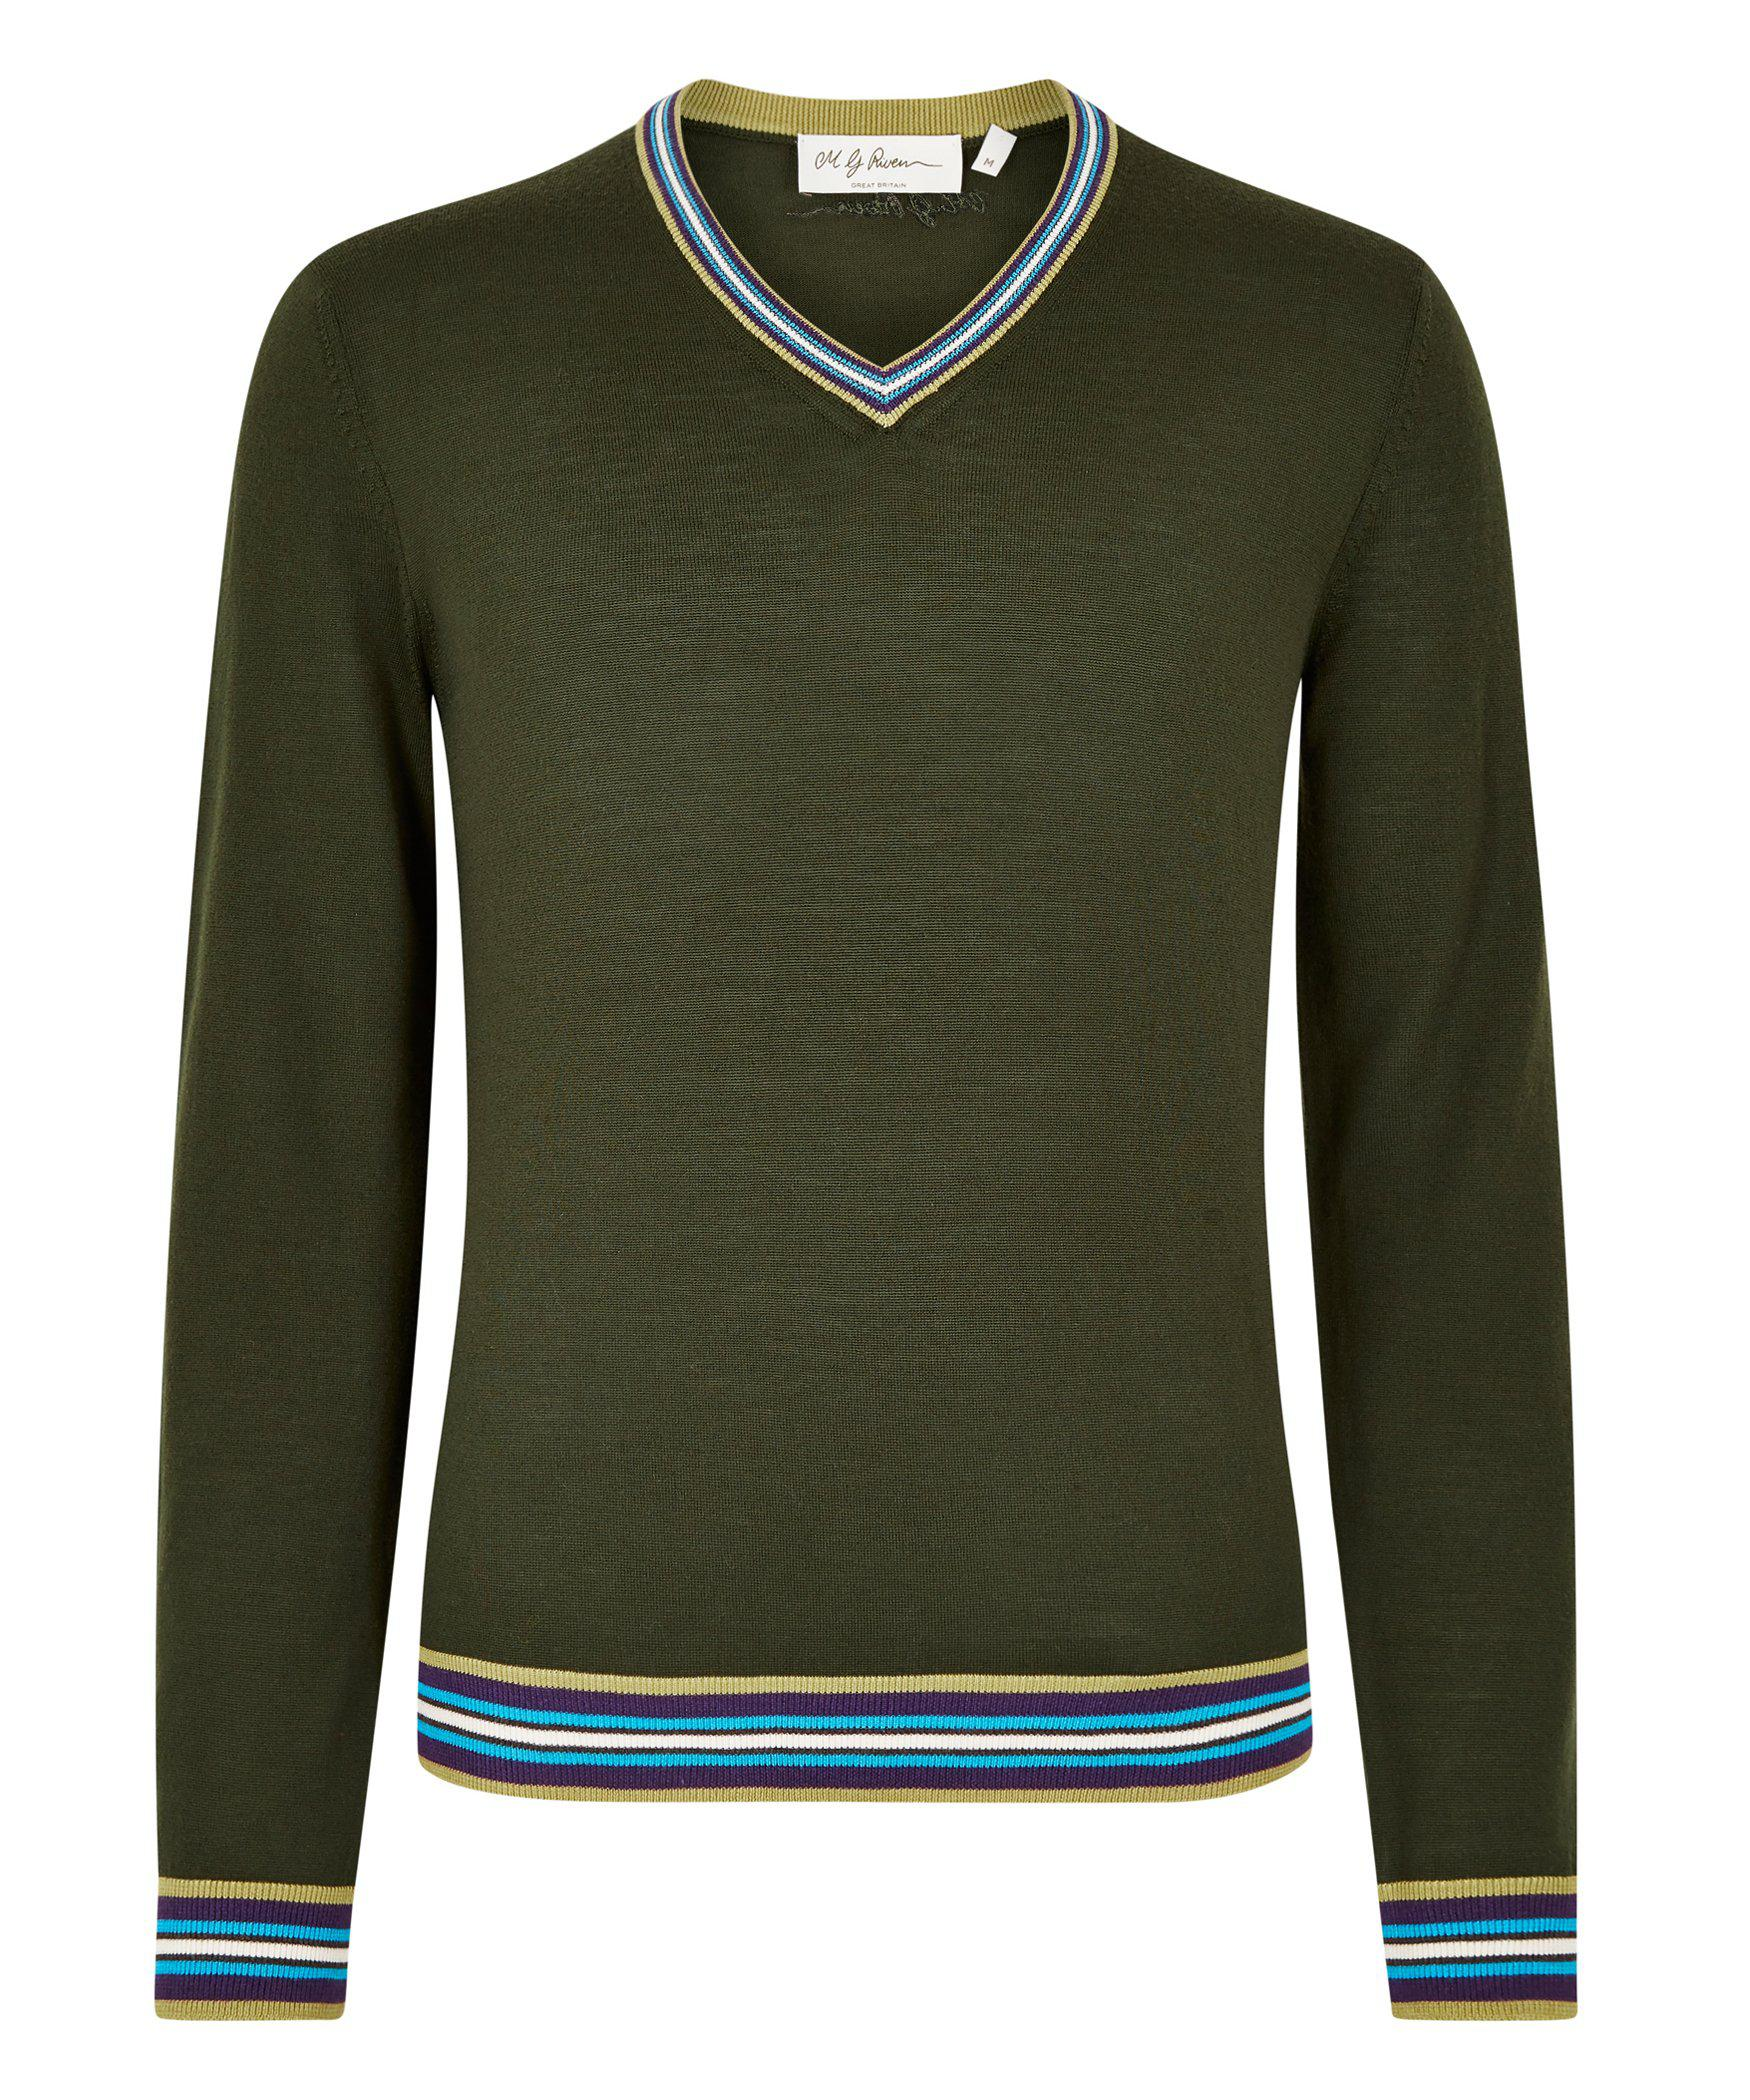 Olive Green Merino V-Neck Jumper - MG Rivers Jumpers